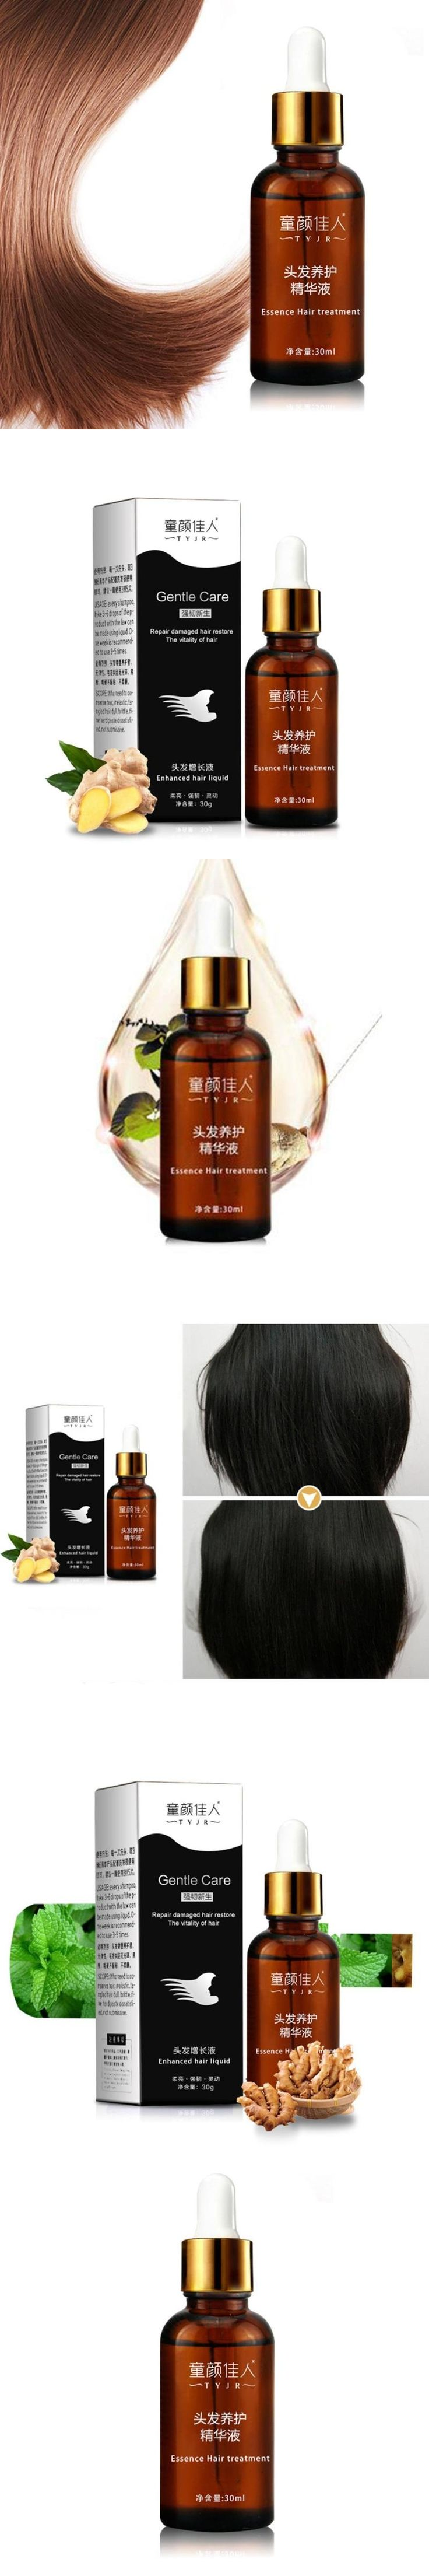 30ml hair growth essence hair loss treatment rapid hair grow best hair growth liquid A4